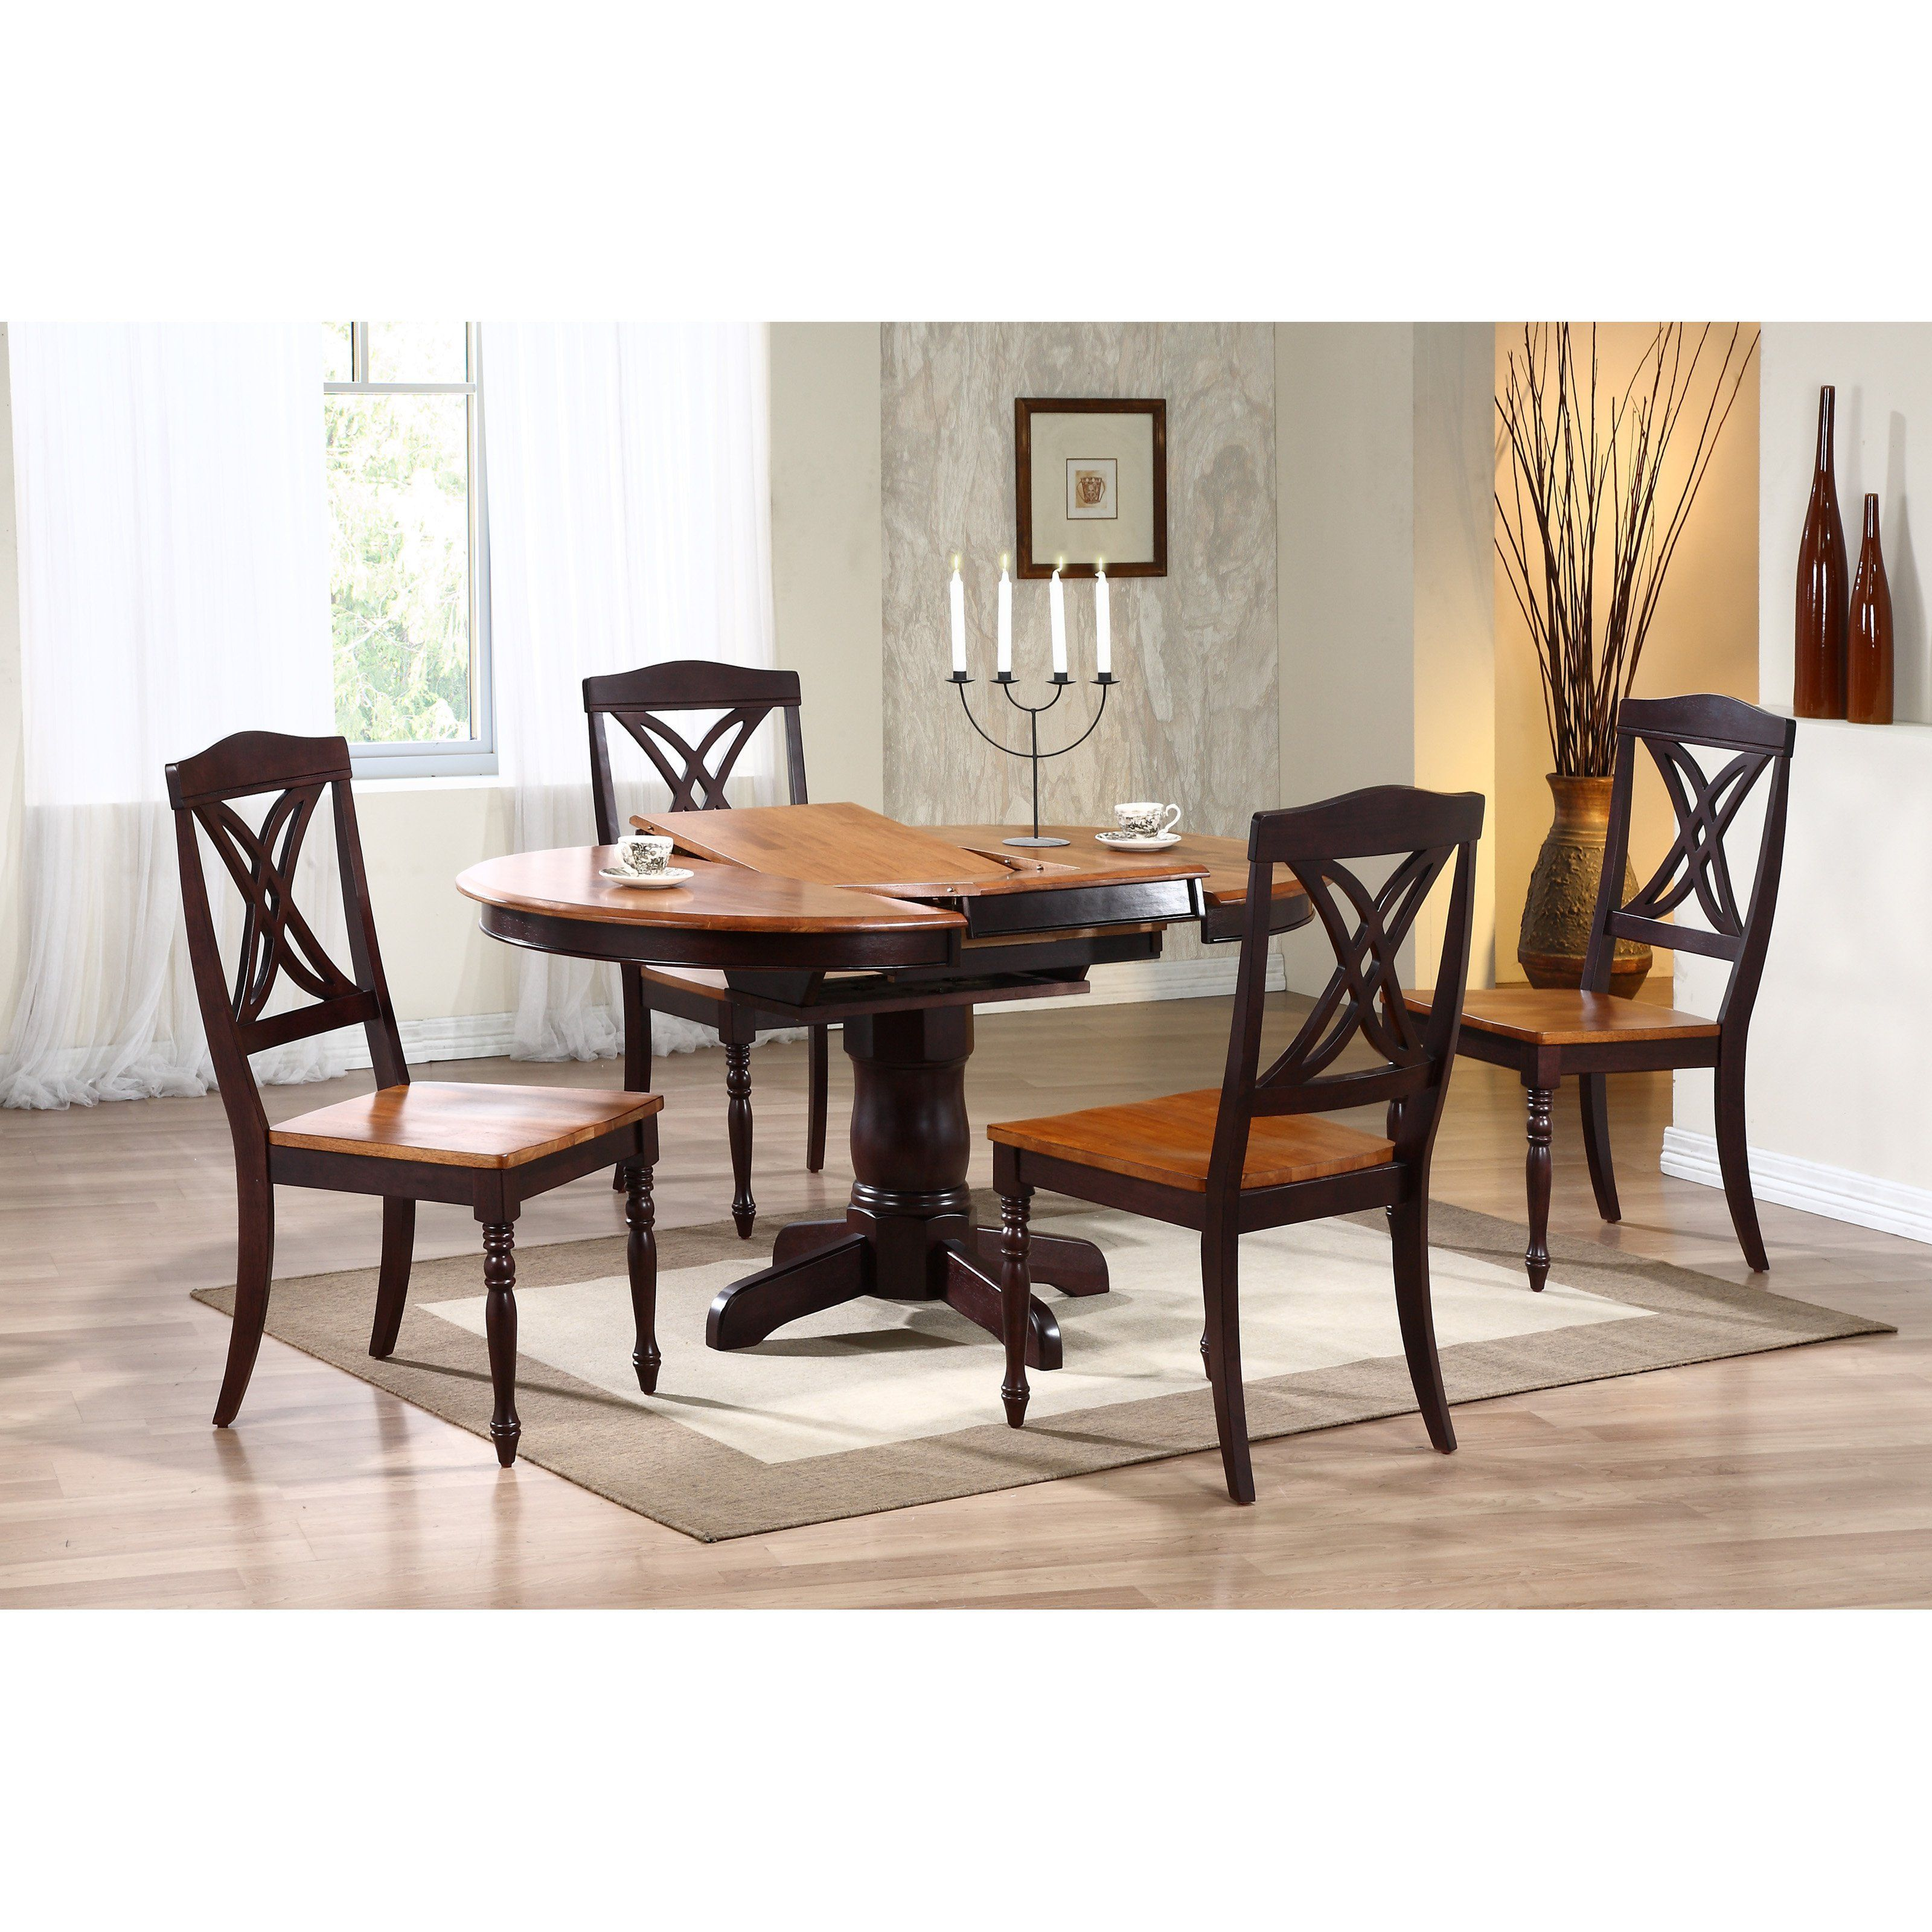 Iconic Furniture 5 Piece Oval Dining Table Set Whiskey Mocha